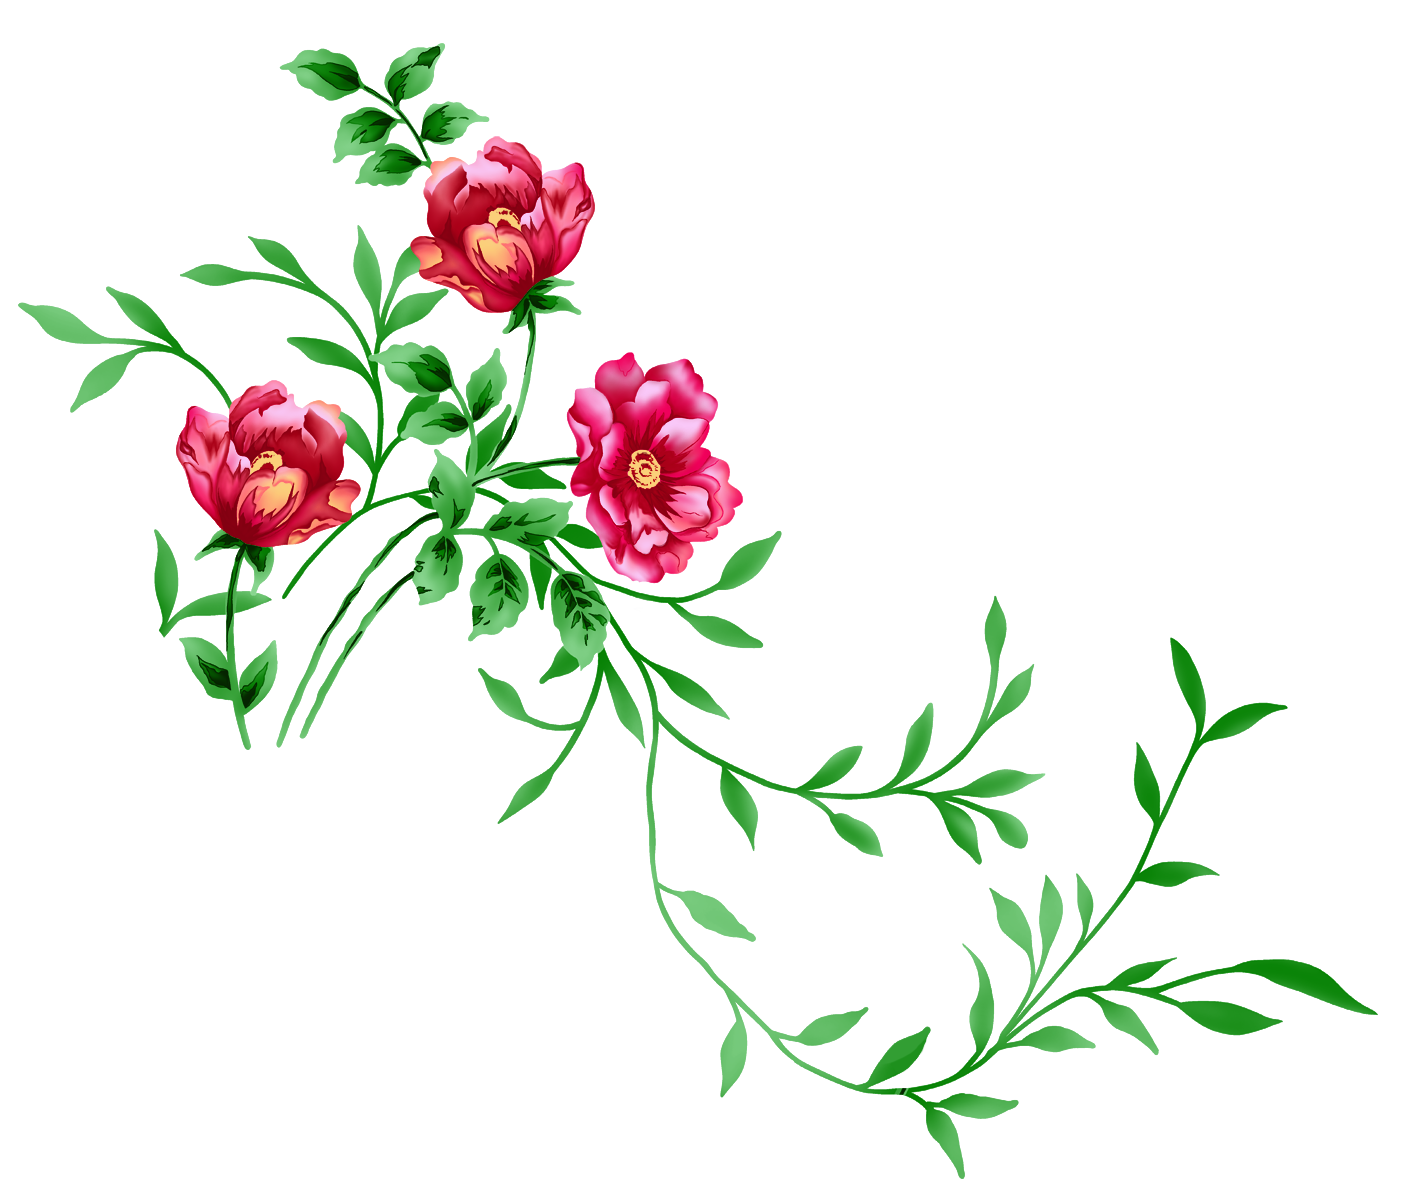 Florais clipart #1, Download drawings